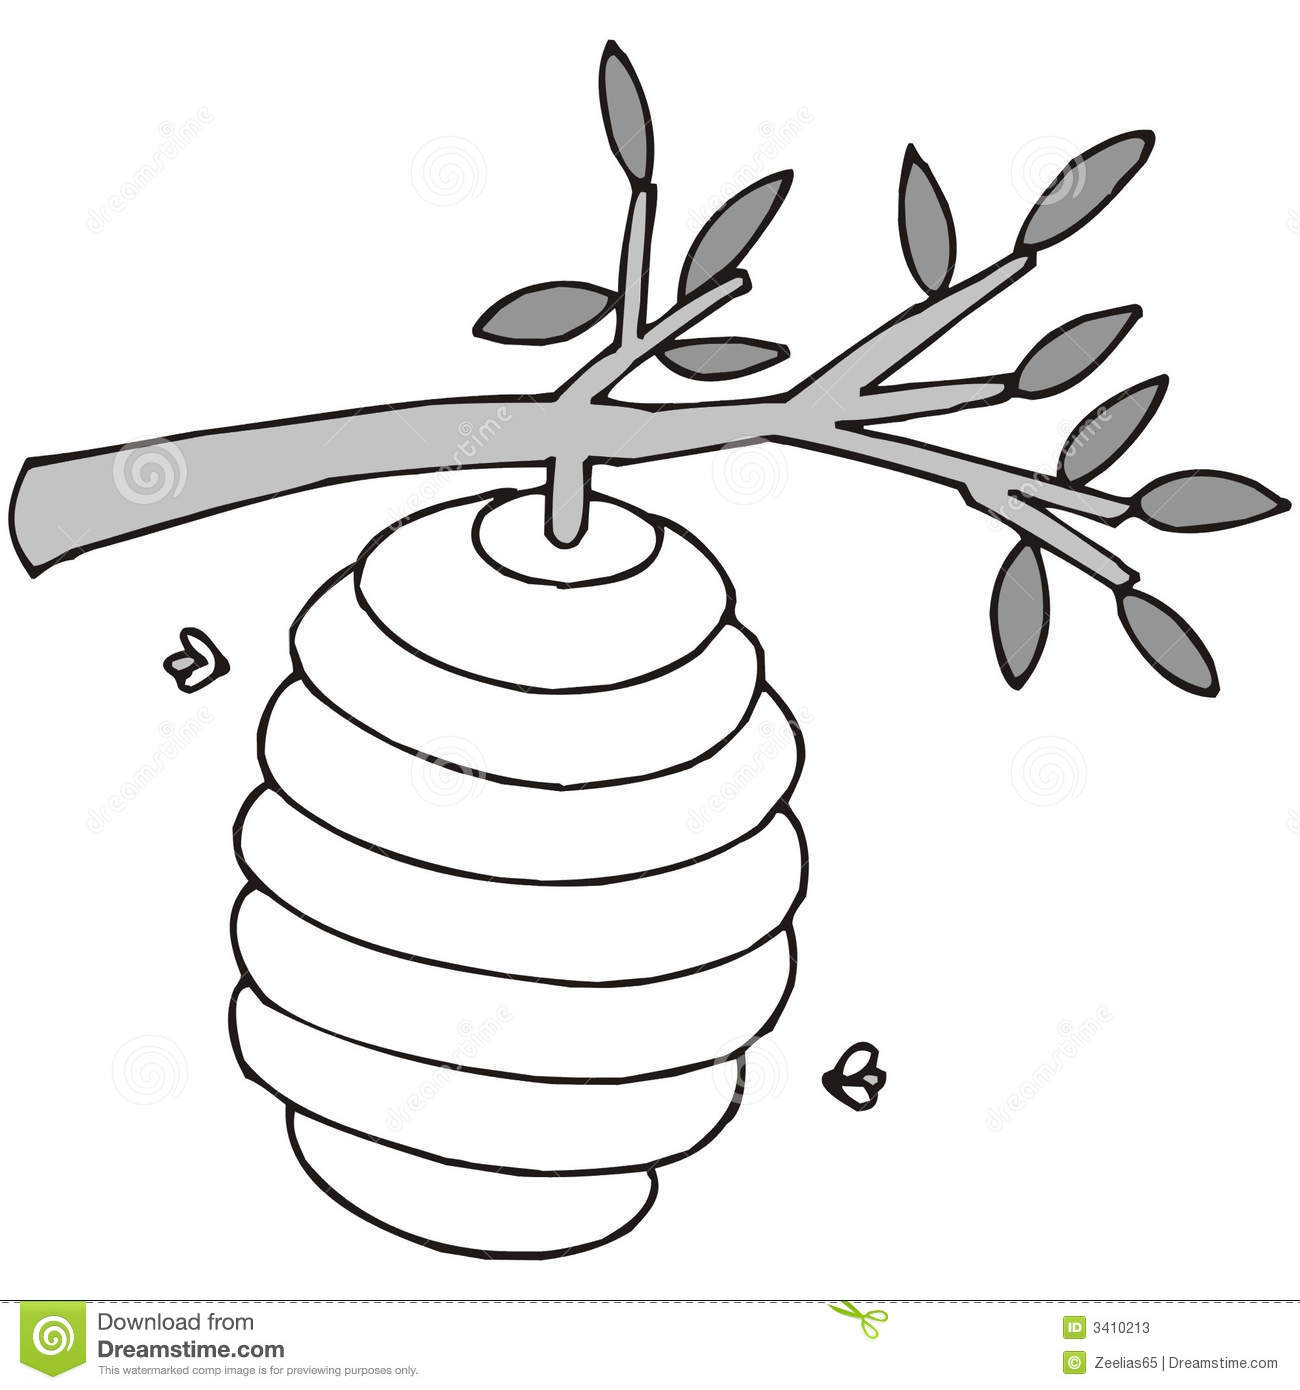 Beehive black and white clipart